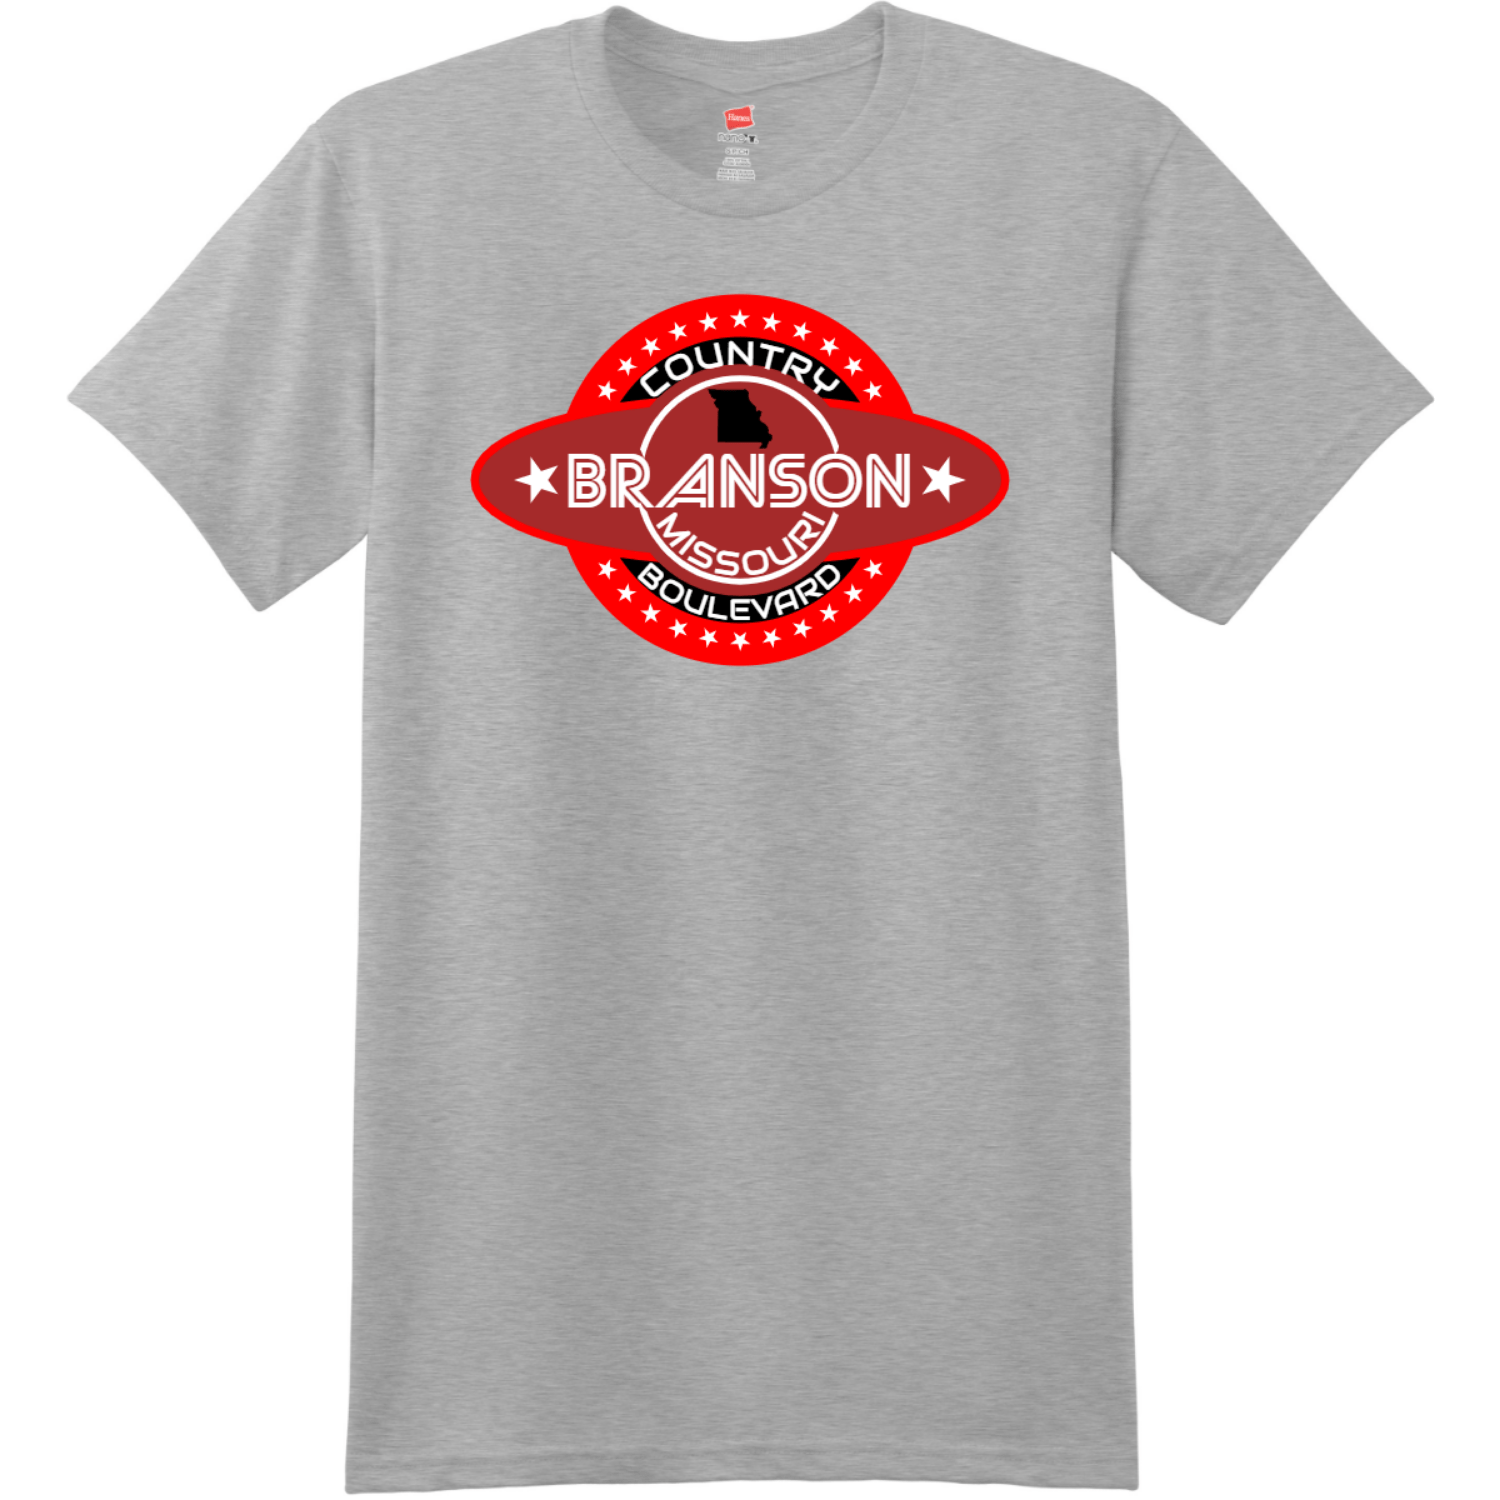 Branson Missouri Country Boulevard T Shirt Light Steel Hanes Nano 4980 Ringspun Cotton T Shirt